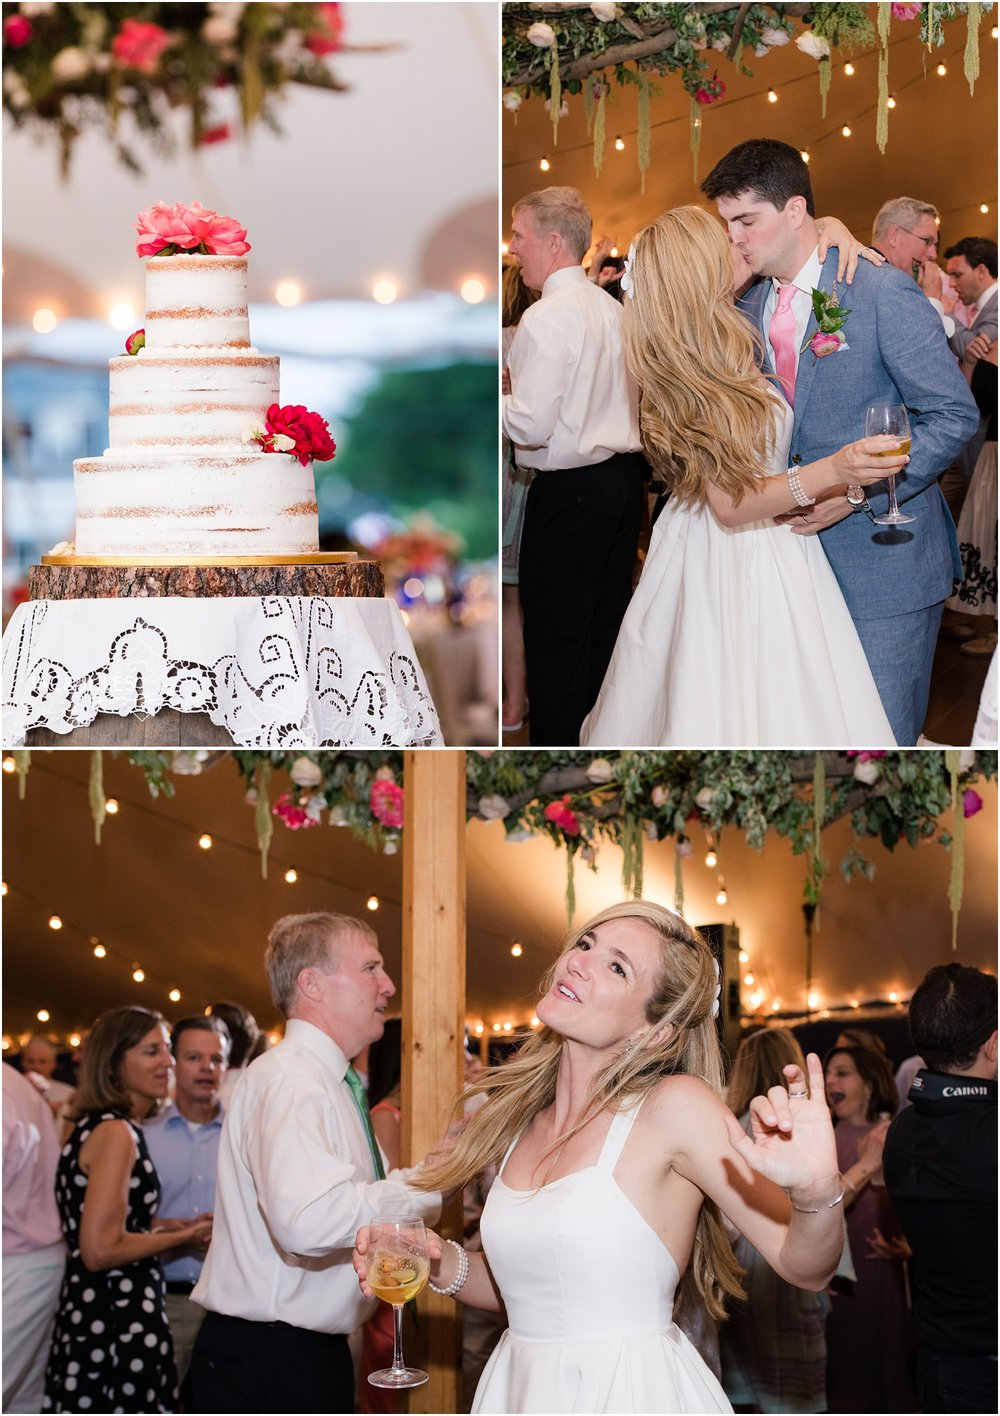 Beautiful naked wedding cake at Mantoloking Yacht Club.